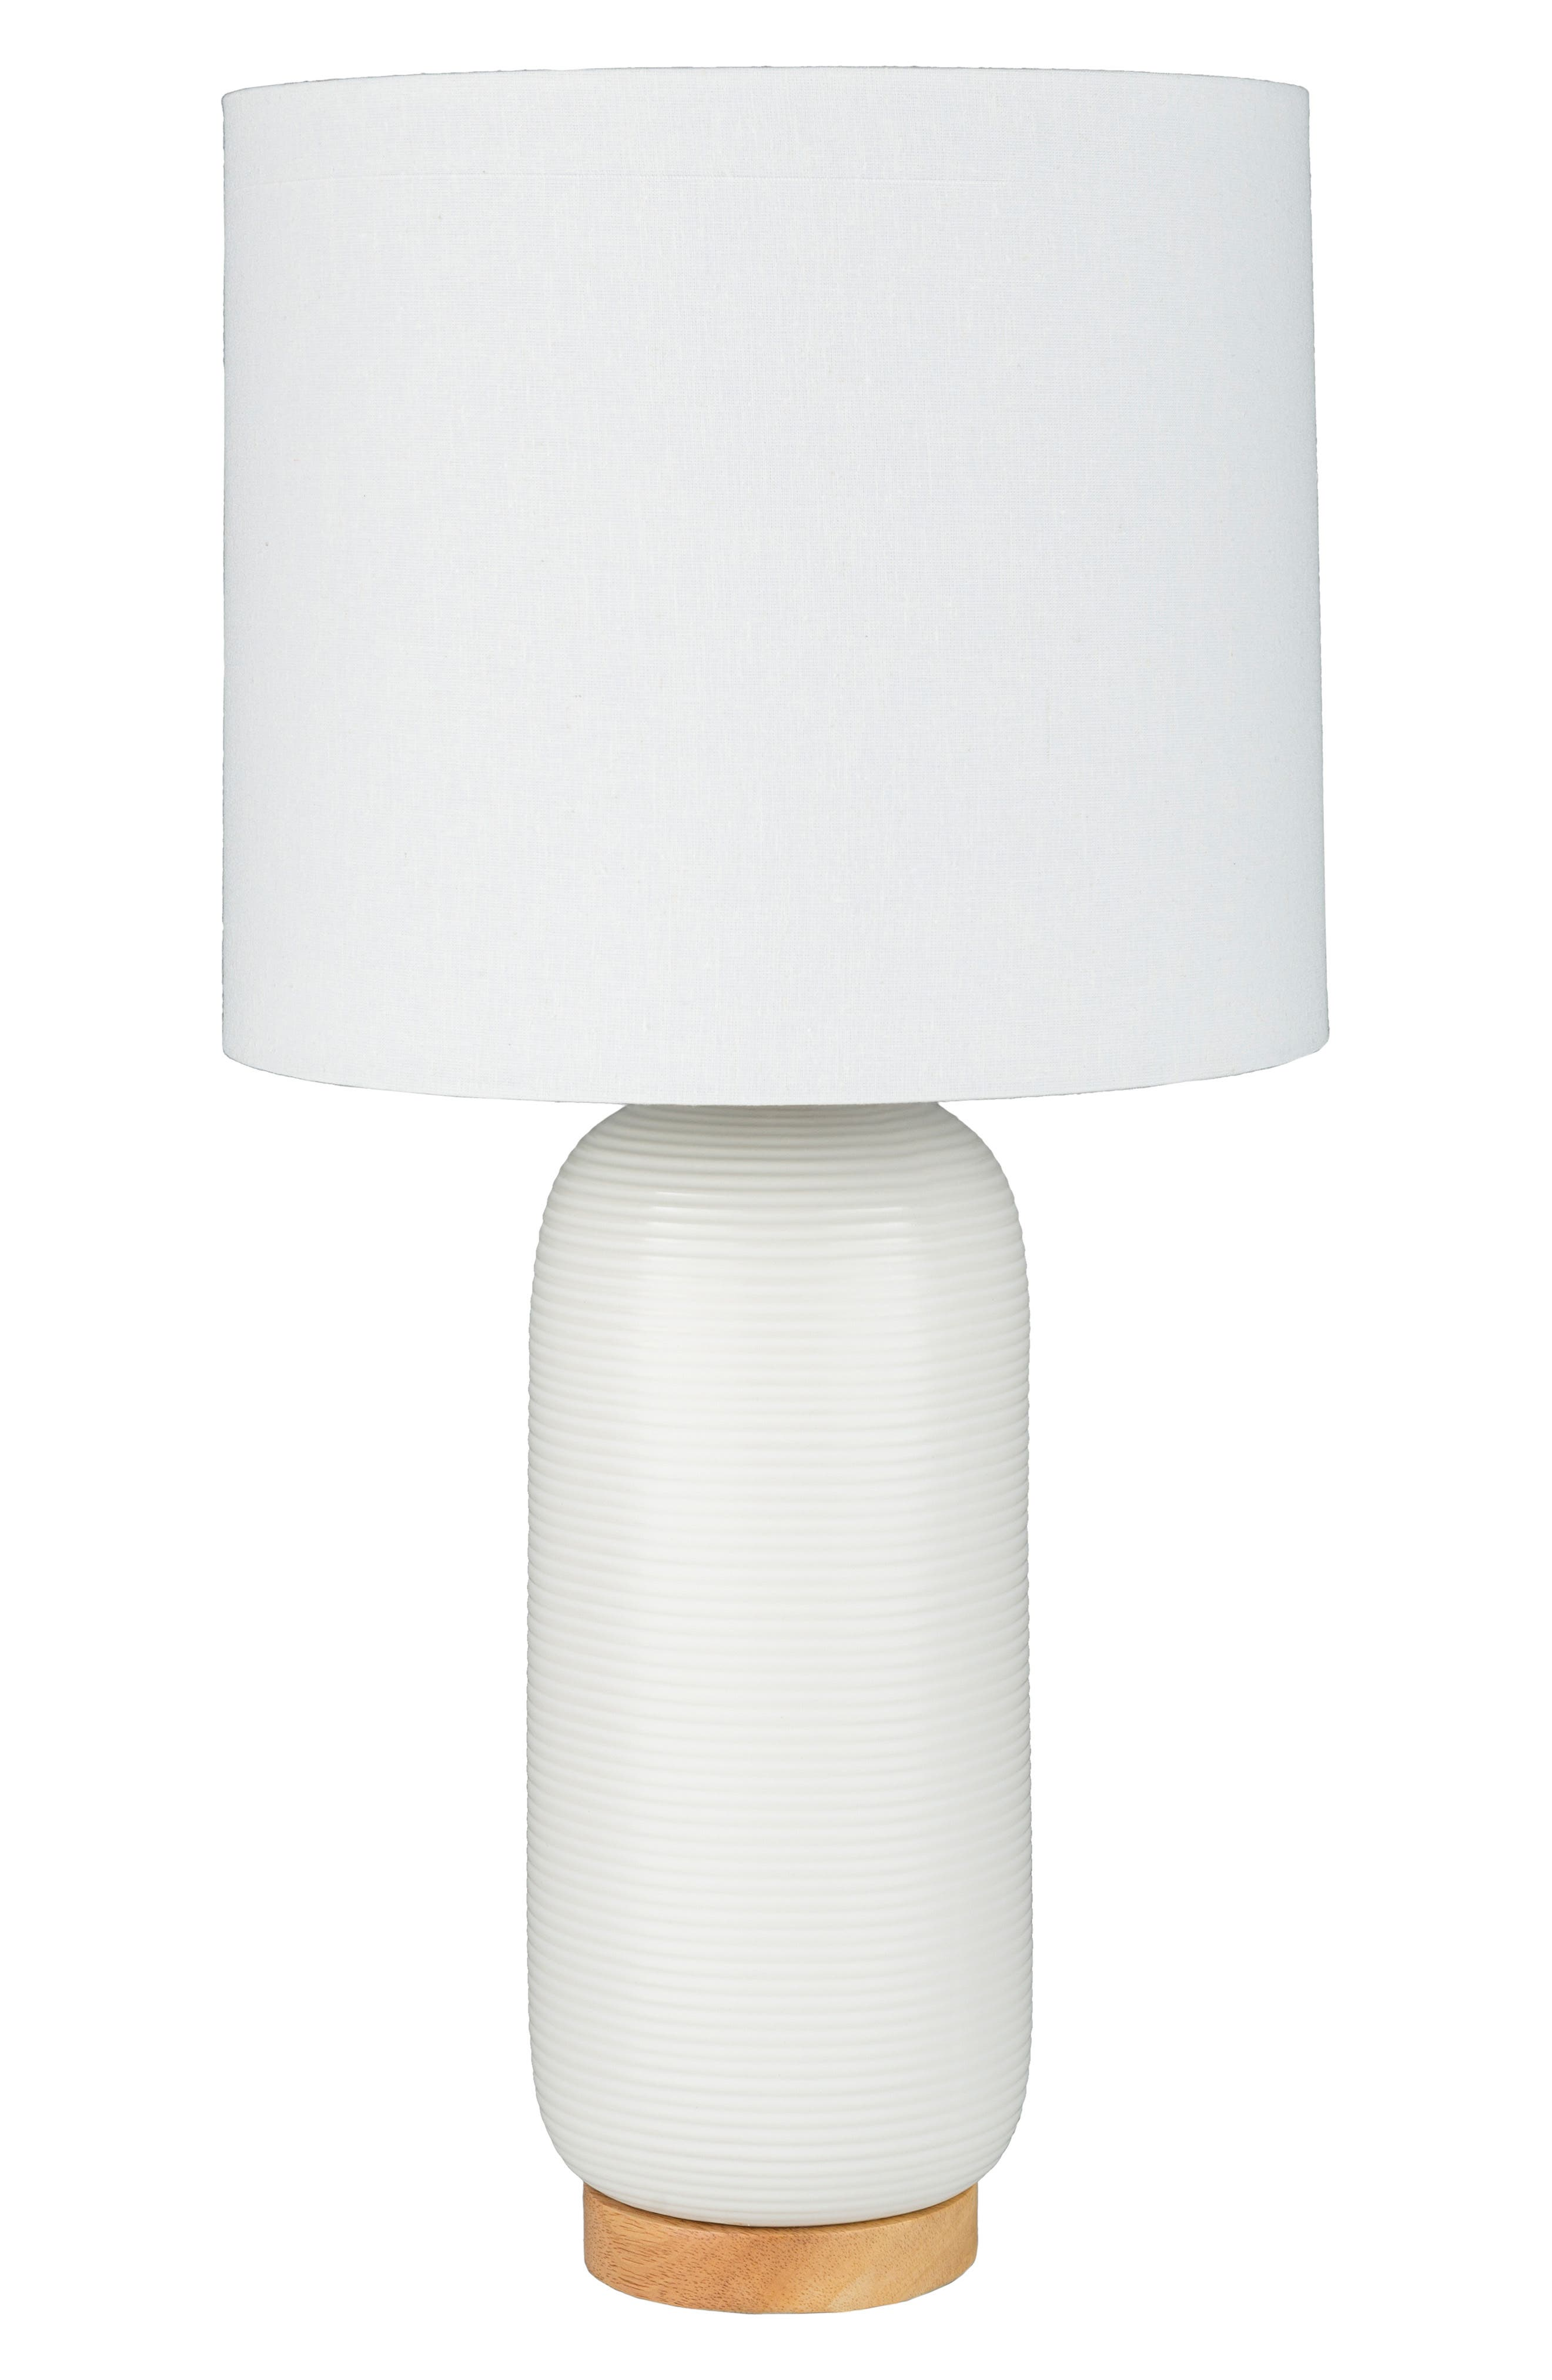 Surya Home Everly Table Lamp